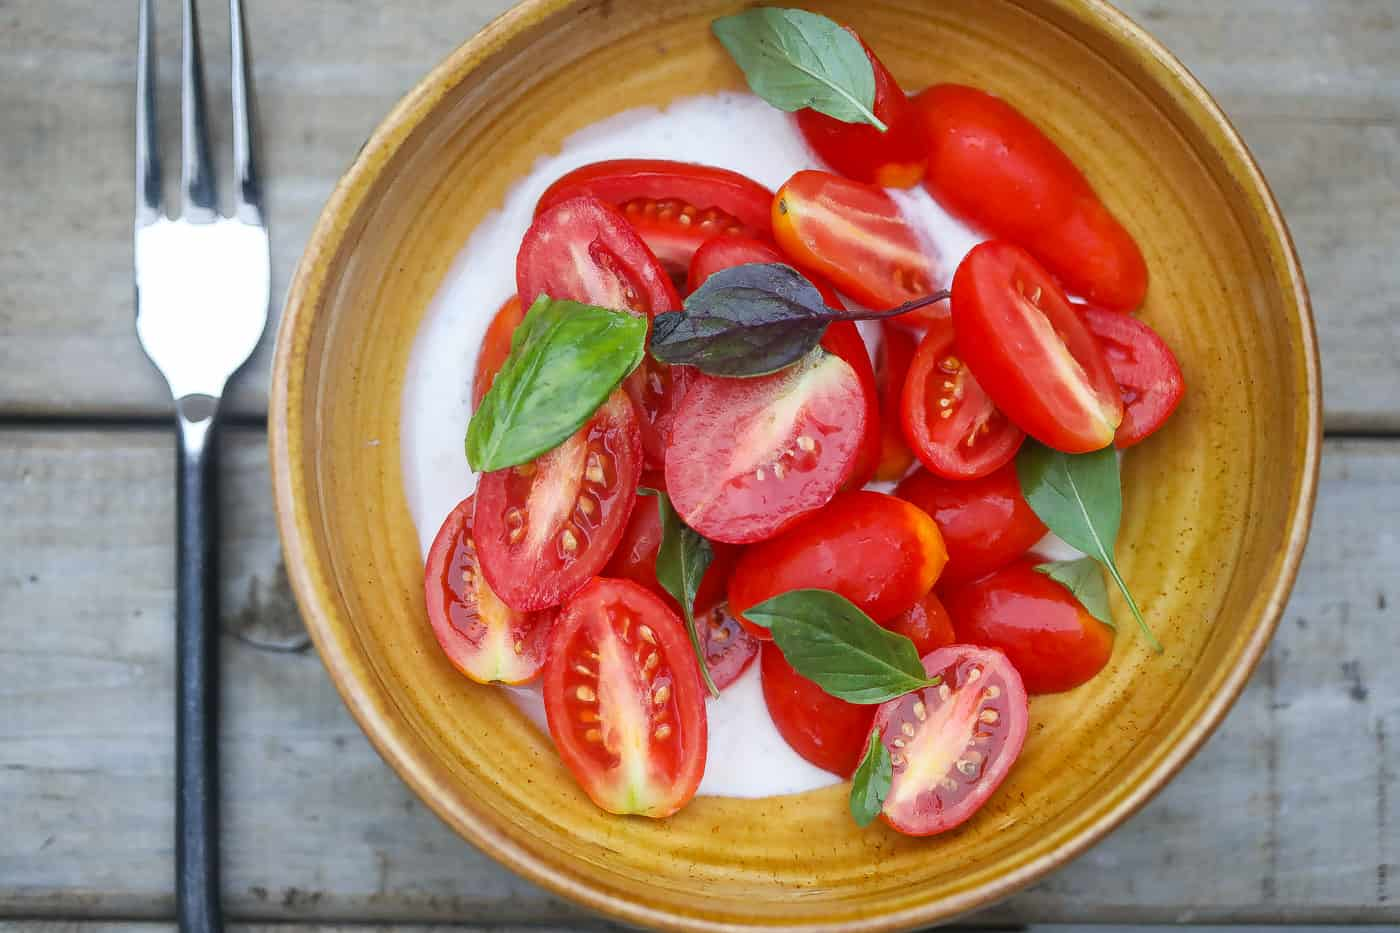 tomatoes and basil in a yellow bowl